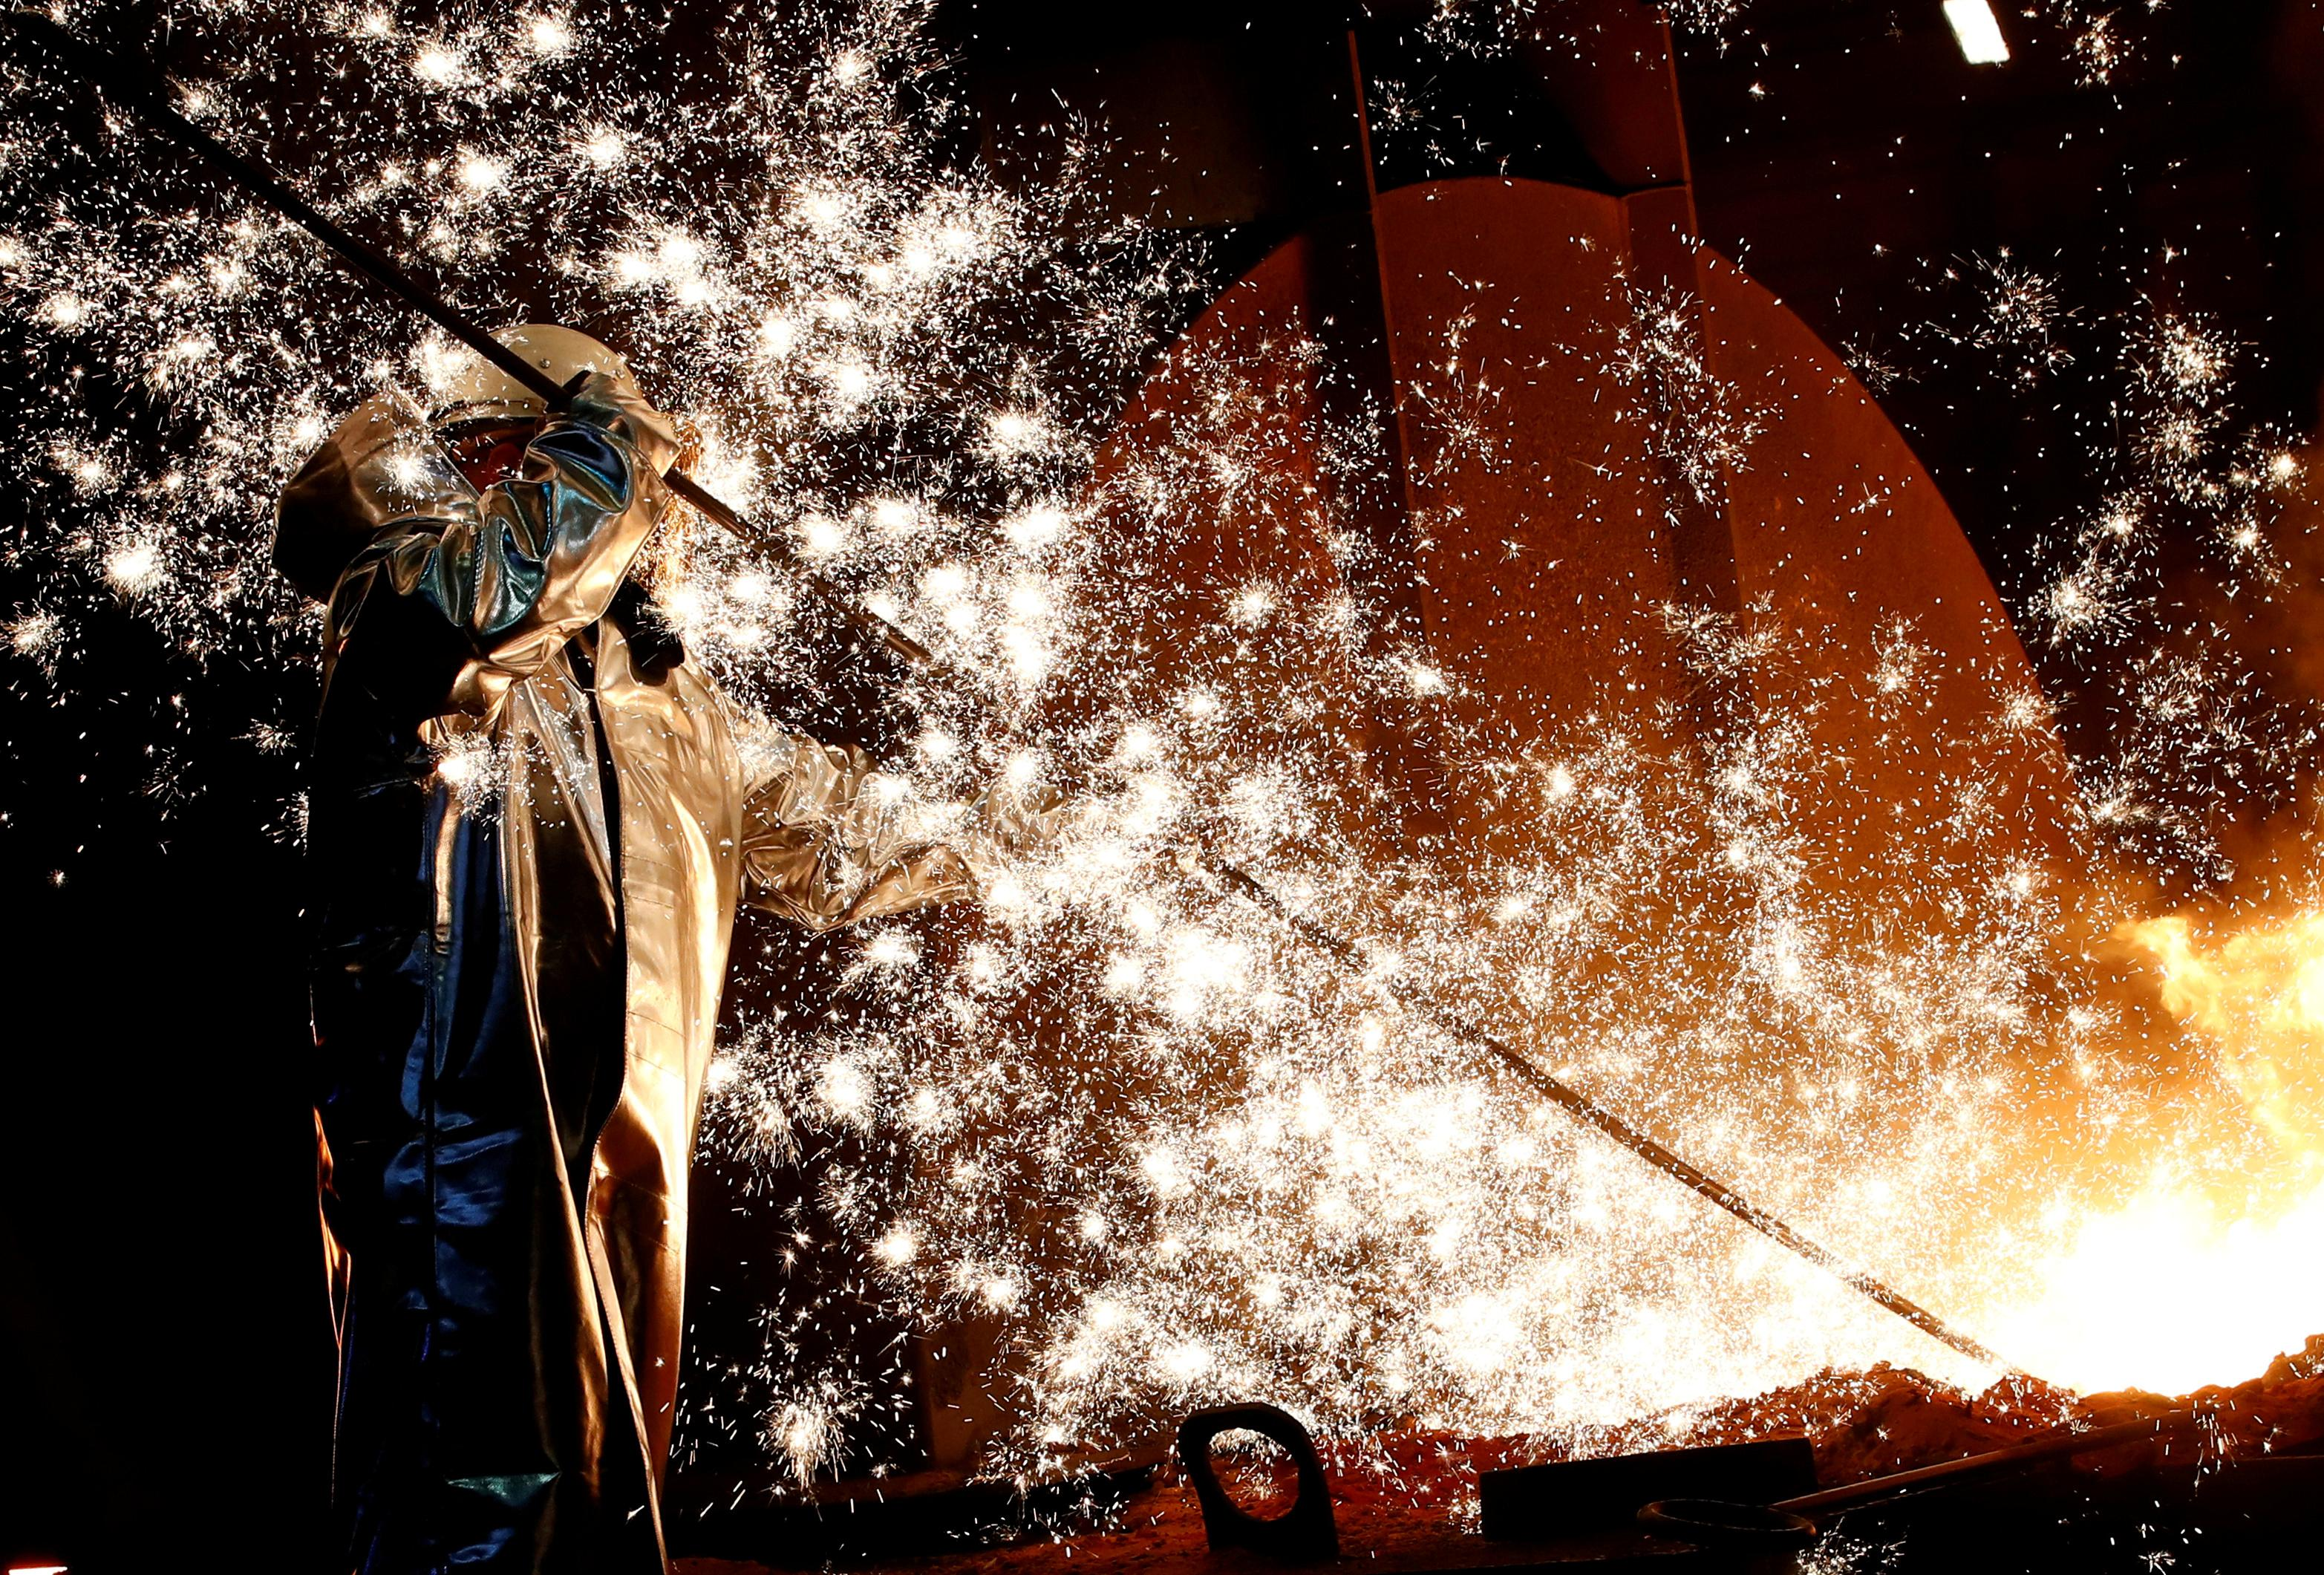 Euro zone business activity gloomy in November, scant hope for...